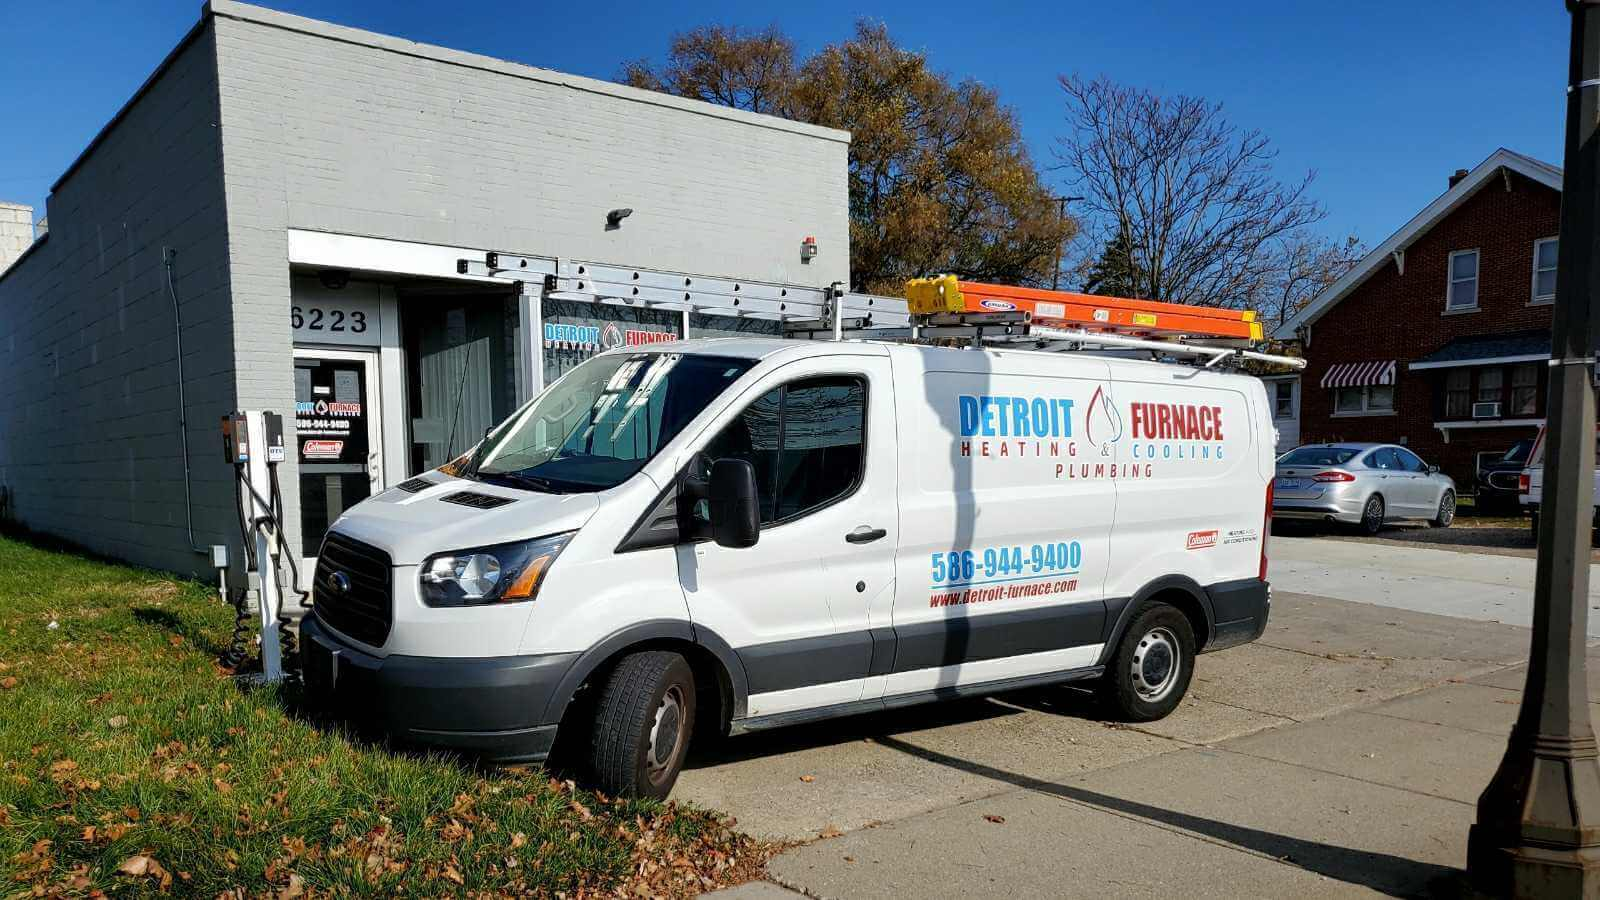 If you see our truck parked out front, you know you're at the right place for great HVAC work.